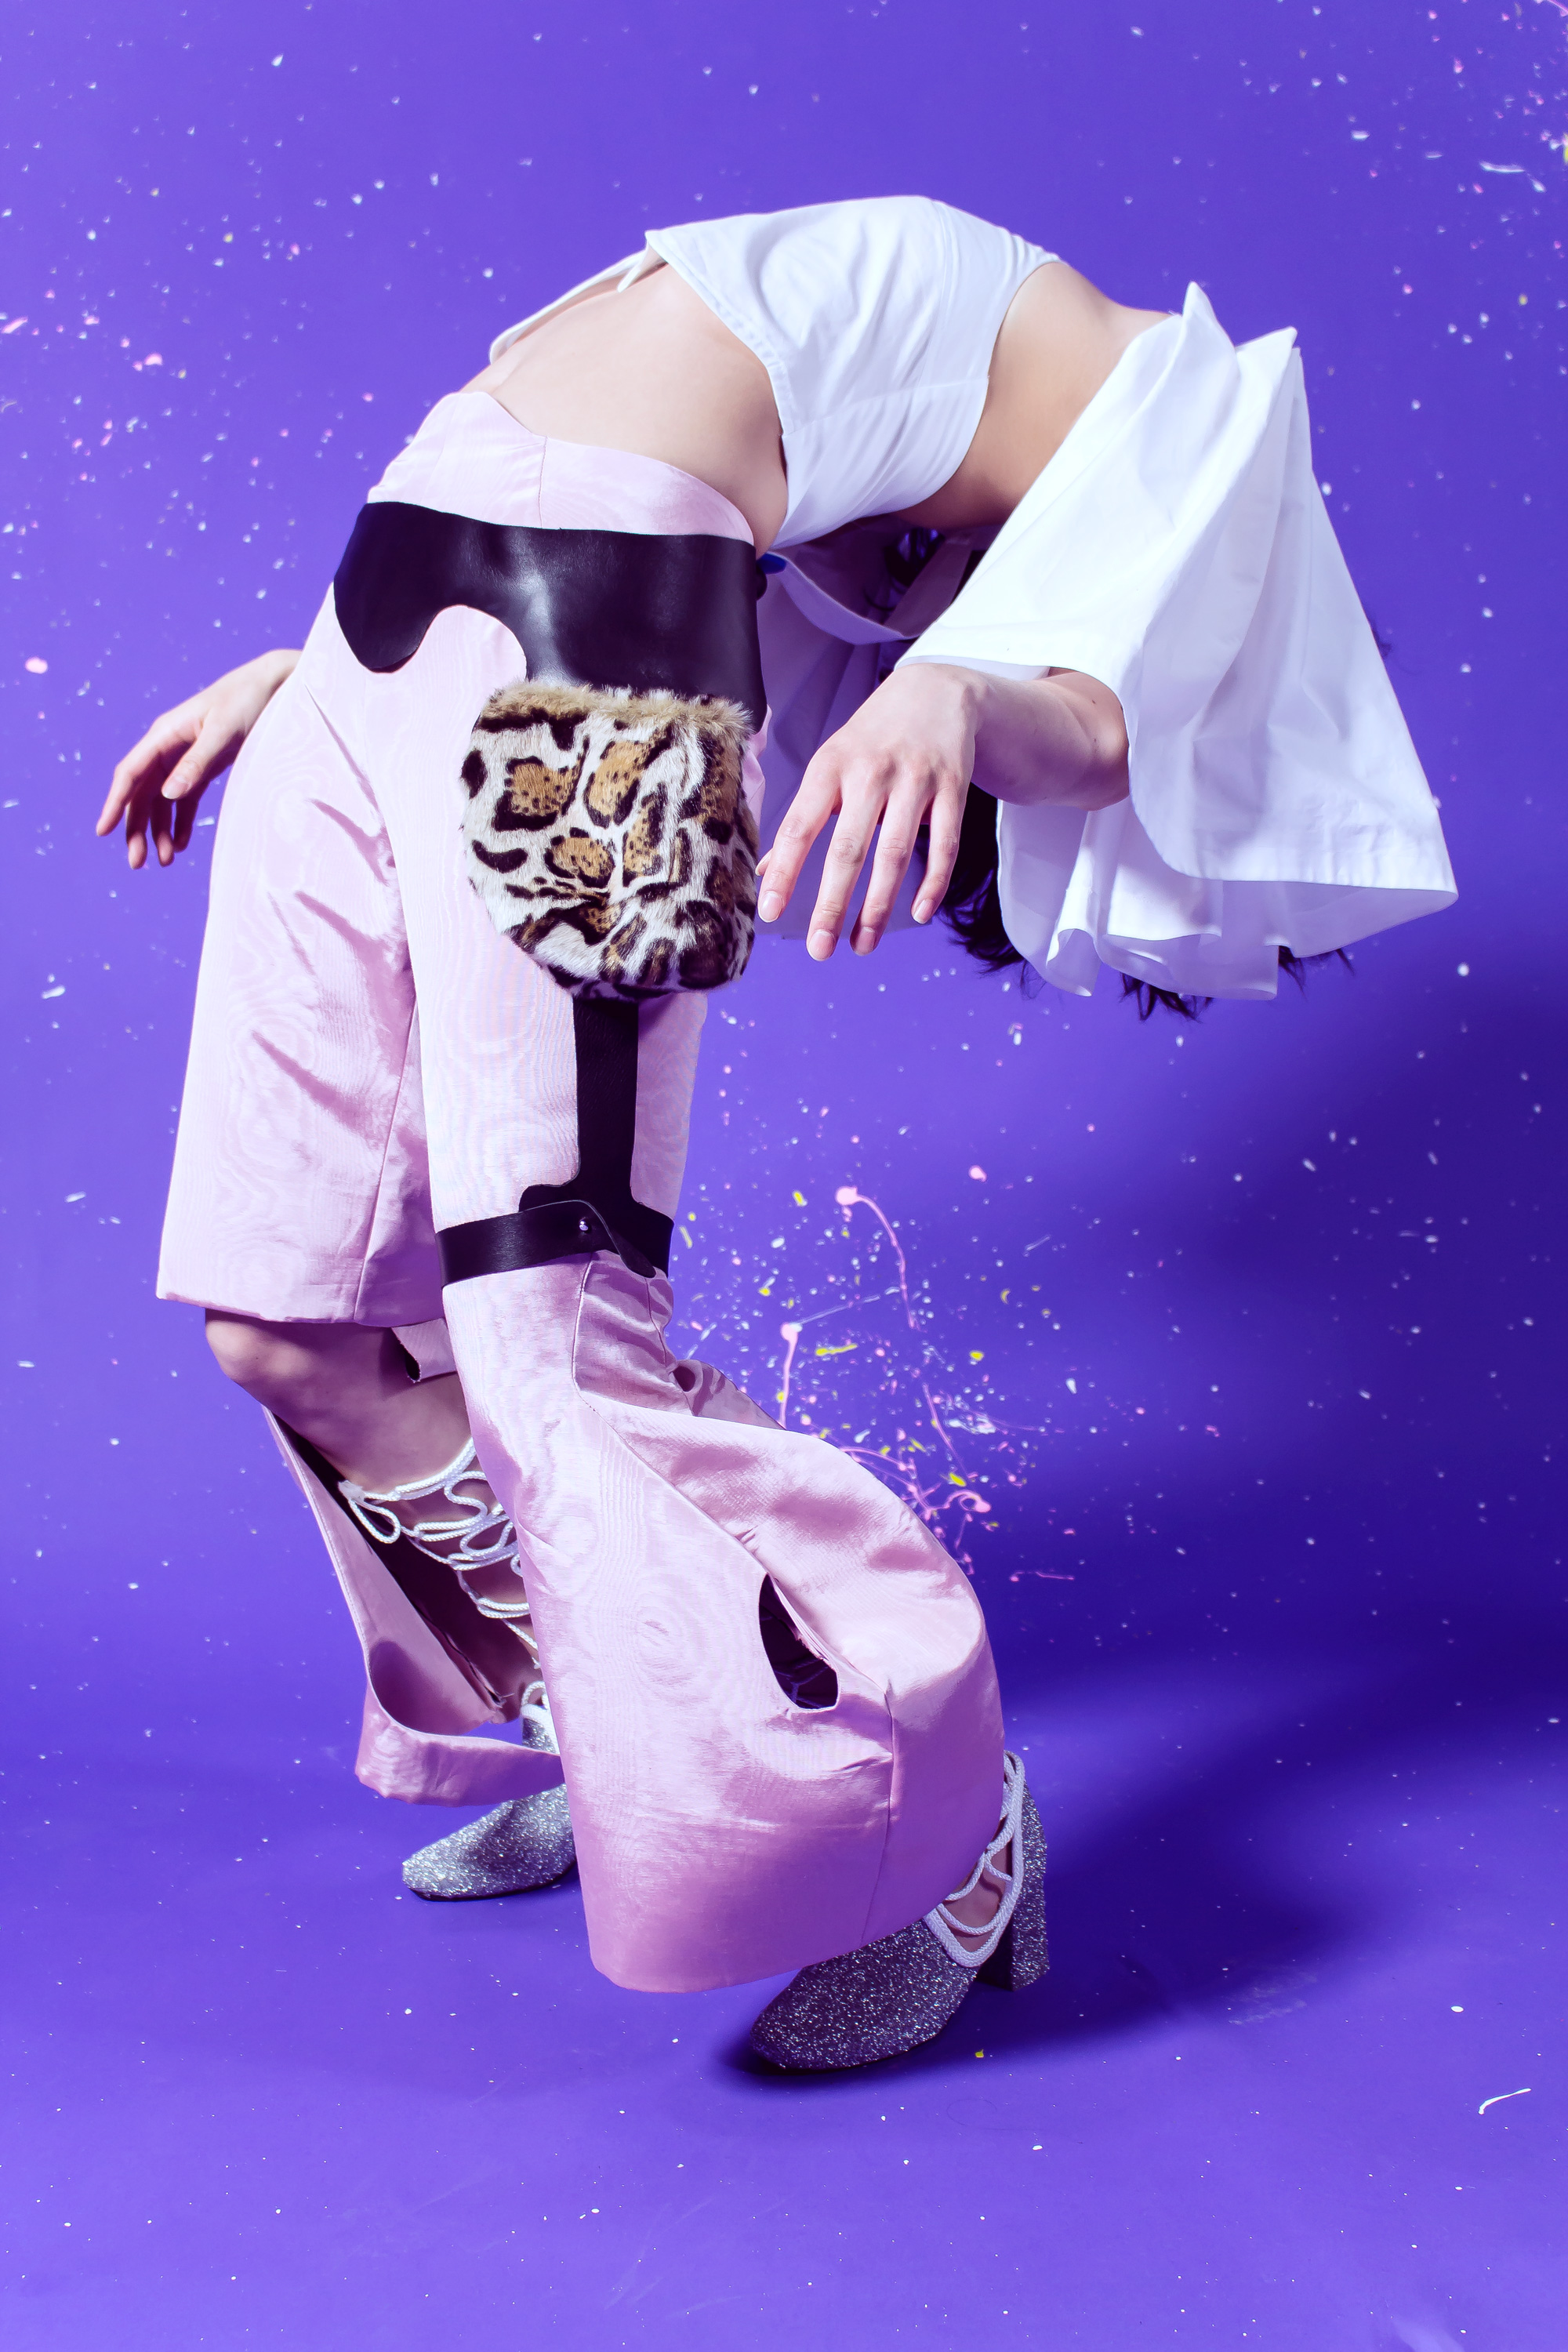 Model wearing Dali at the Disco white cotton blouse, pink moirée cut-out pants, ocelot belt and glitter boots while bending over backwards in front of a purple studio background